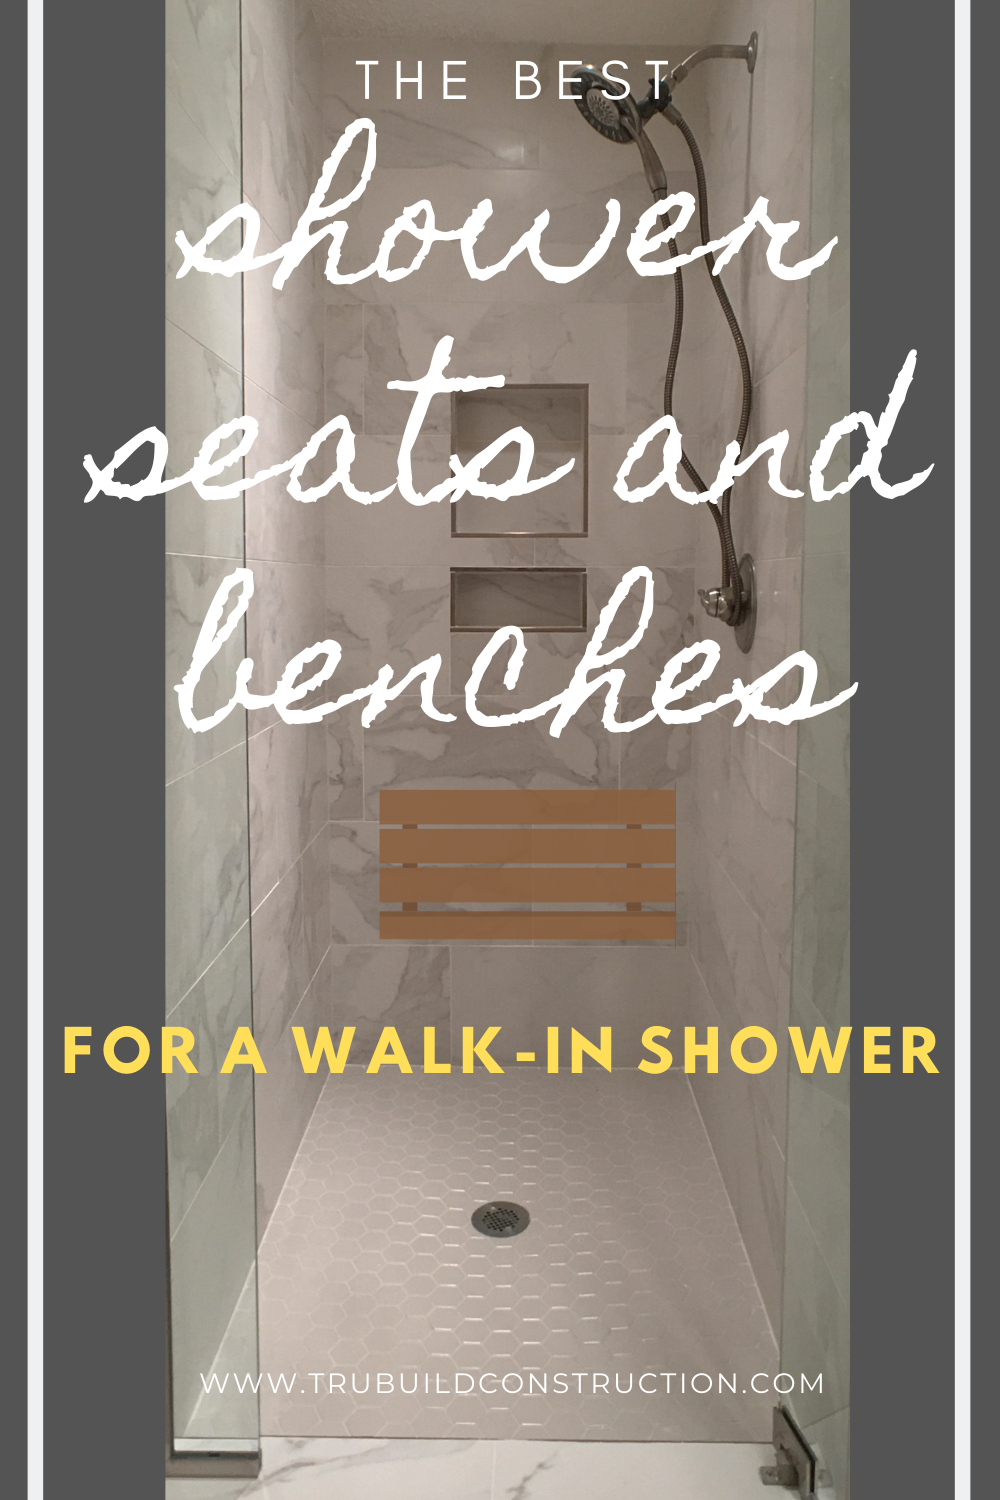 The Best Shower Seats And Benches For Walk In Showers — TruBuild